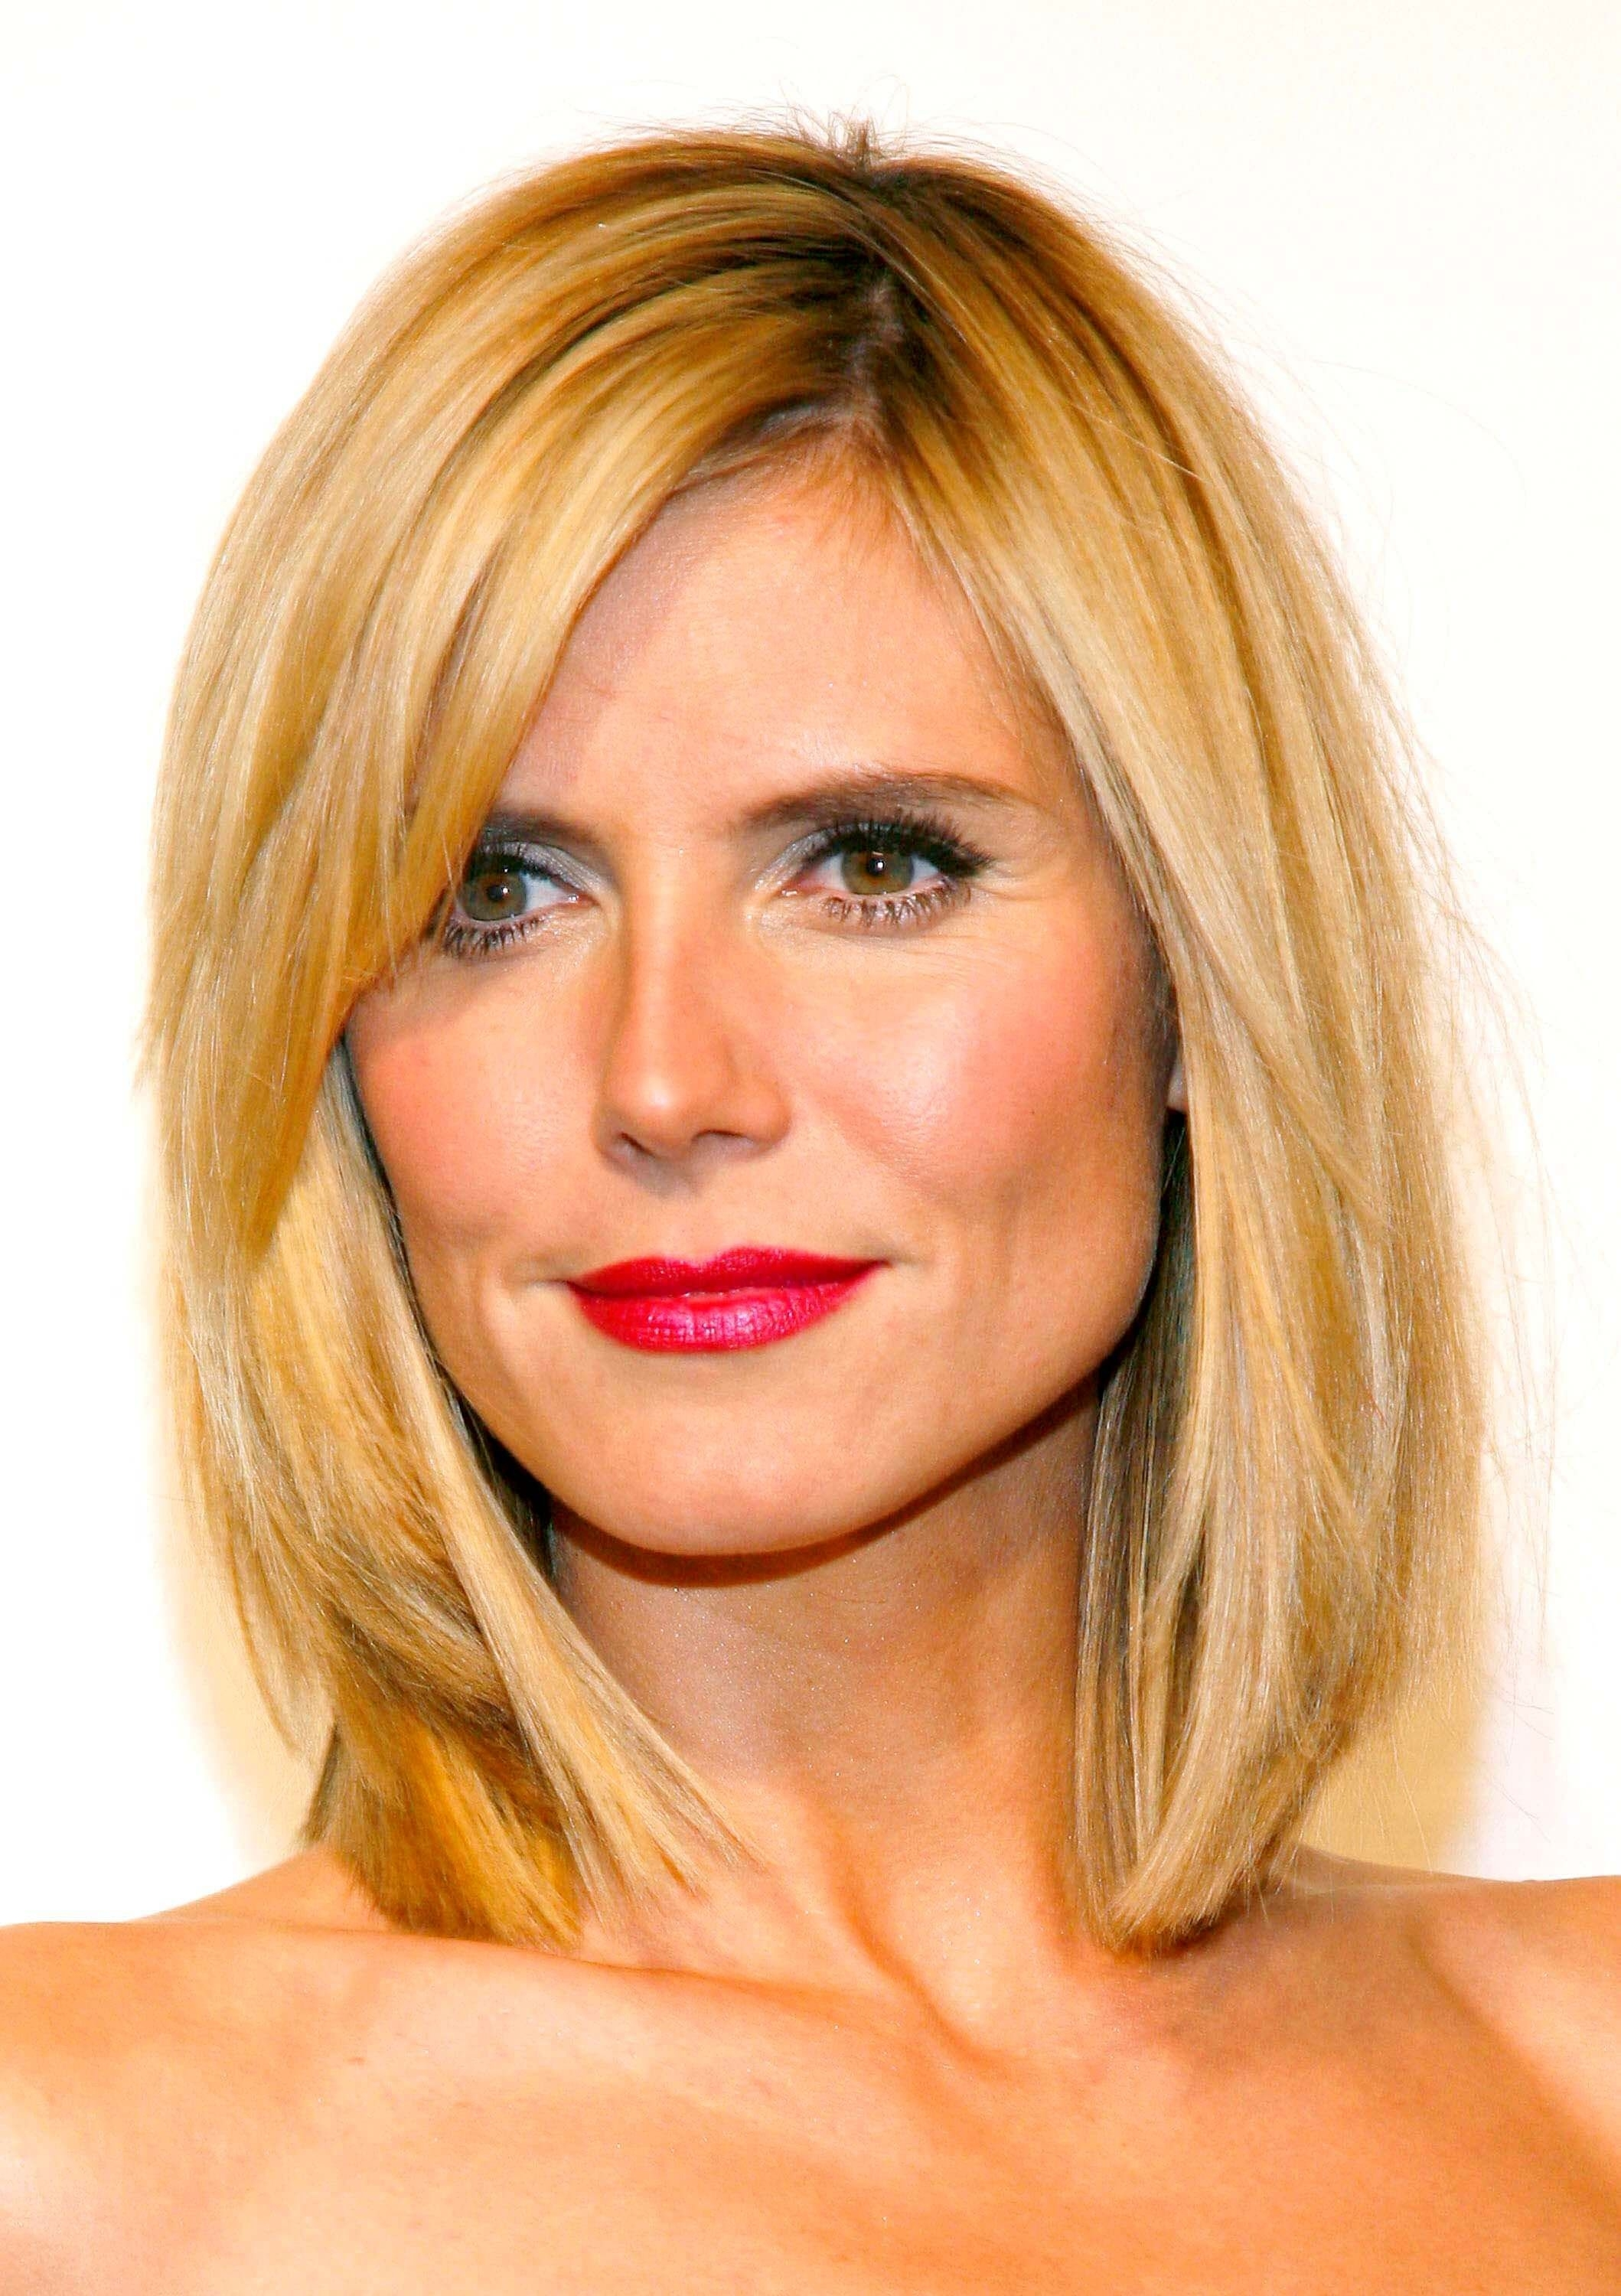 Struggling To Find Good Short Hairstyles For Square Faces? Here's with Best Hairstyle For Square Face Thin Hair